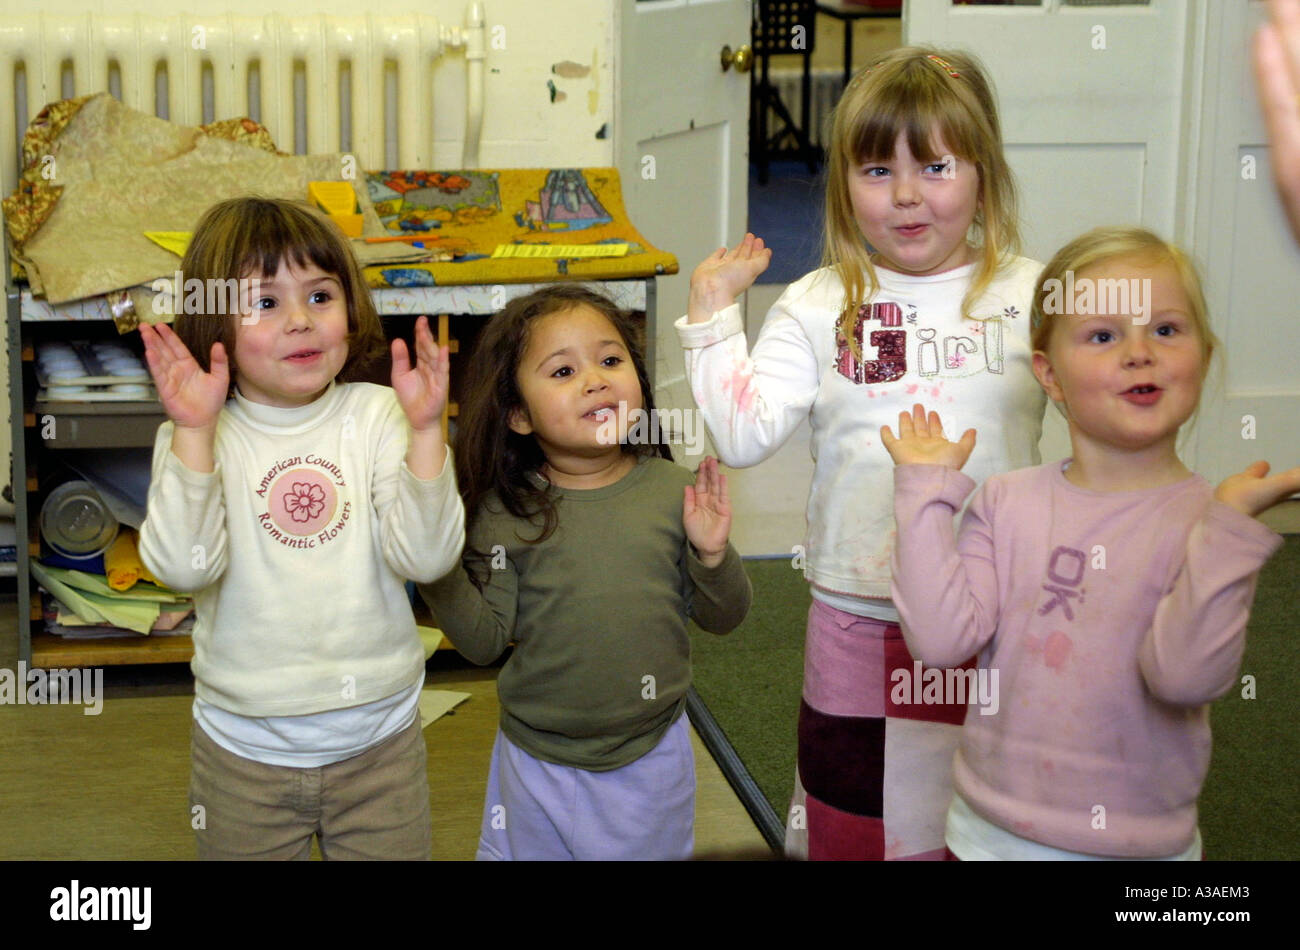 nursery school girls clapping and singing in class. - Stock Image